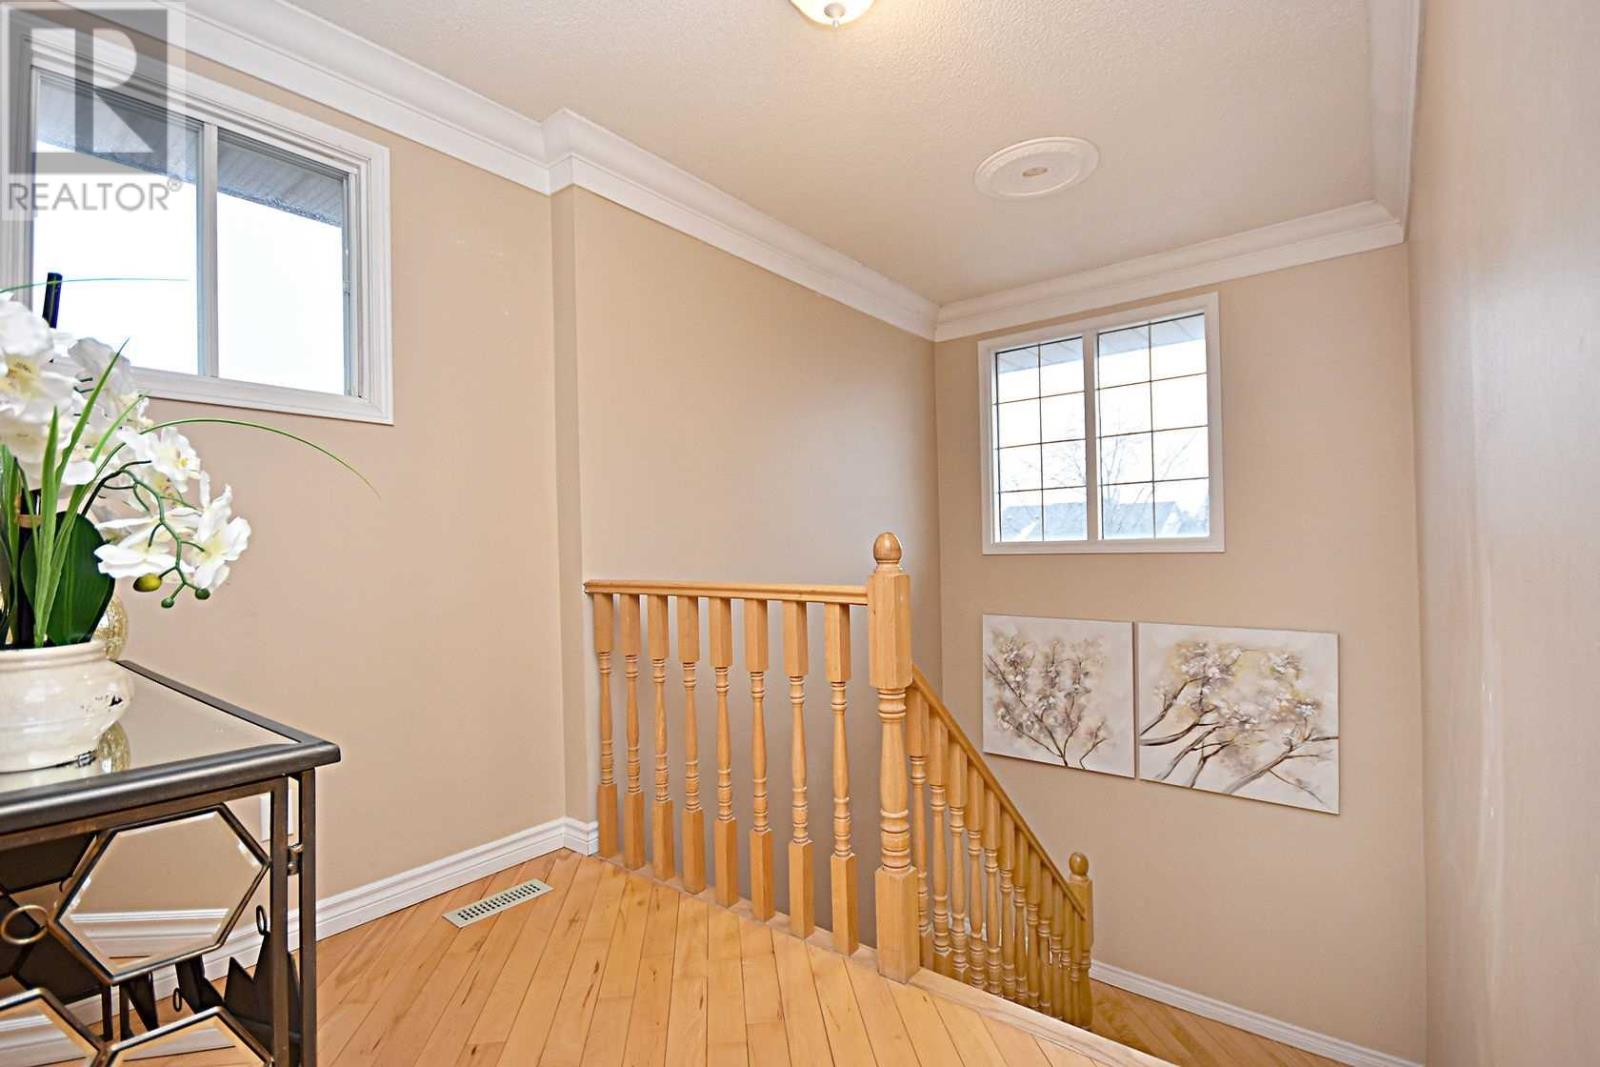 354 Howell Rd, Oakville, Ontario  L6H 5Y1 - Photo 12 - W4675254